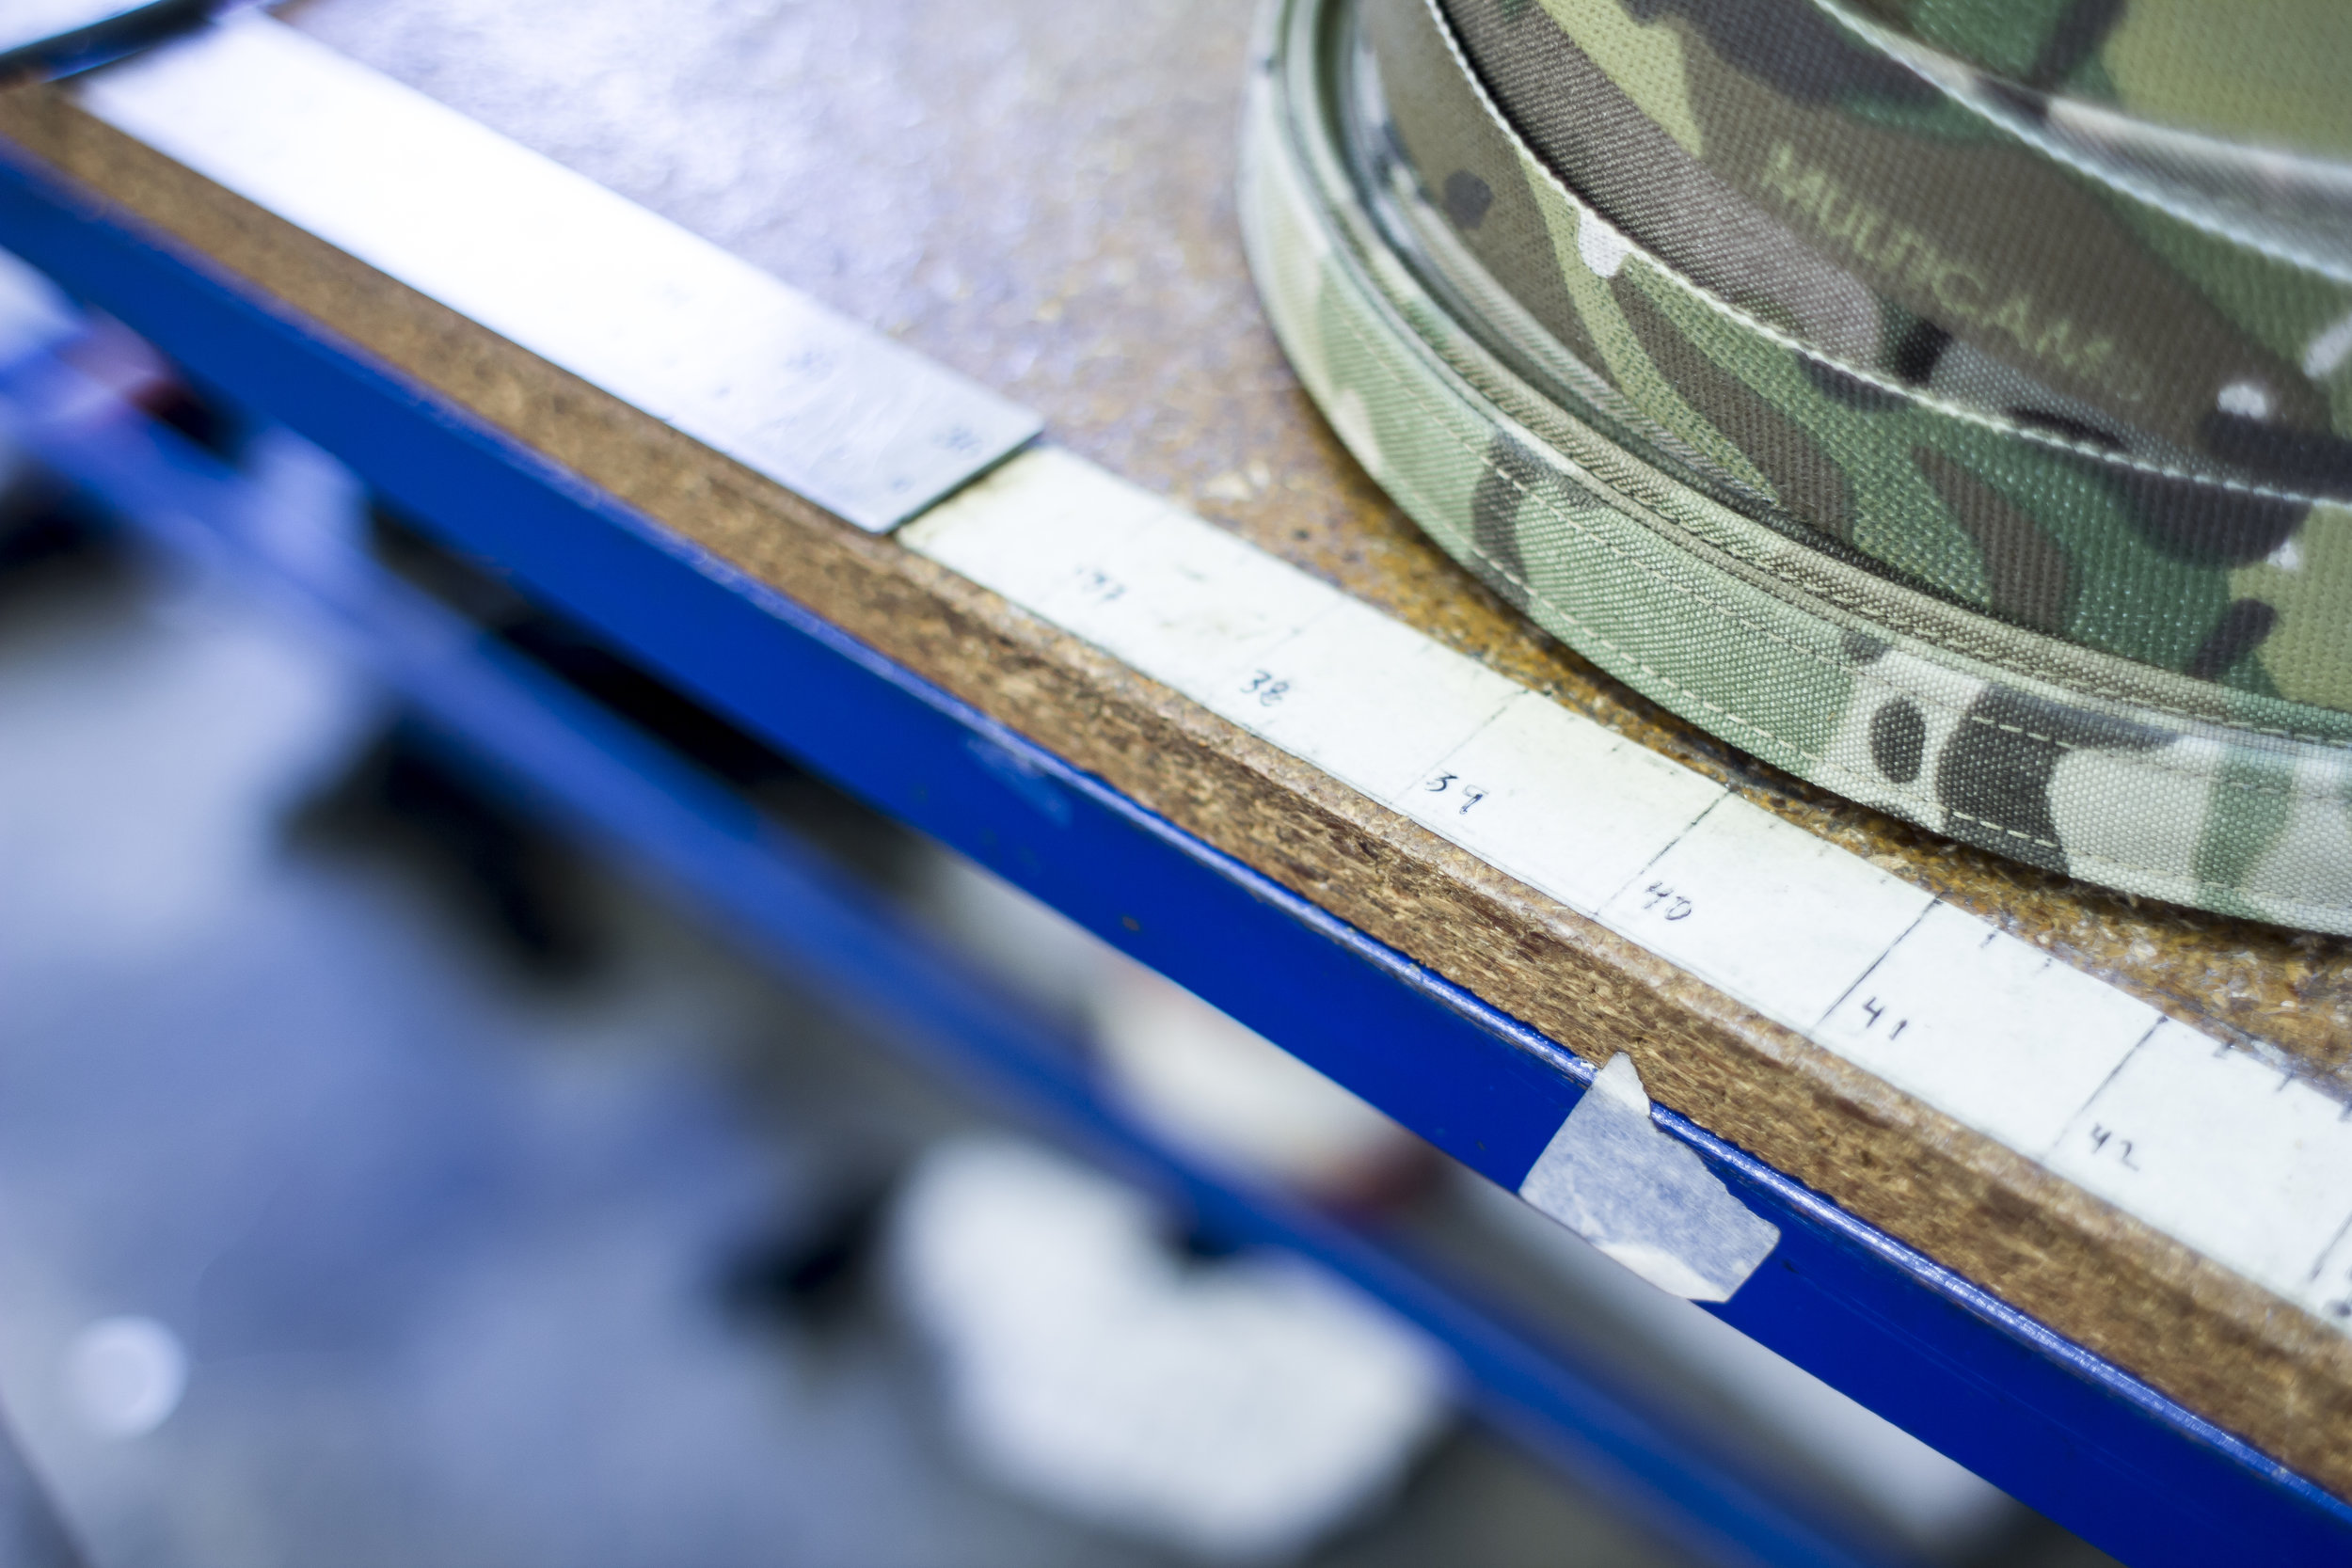 TOP 5 QUESTIONS - SEWING CONTRACTORS WANT TO KNOW